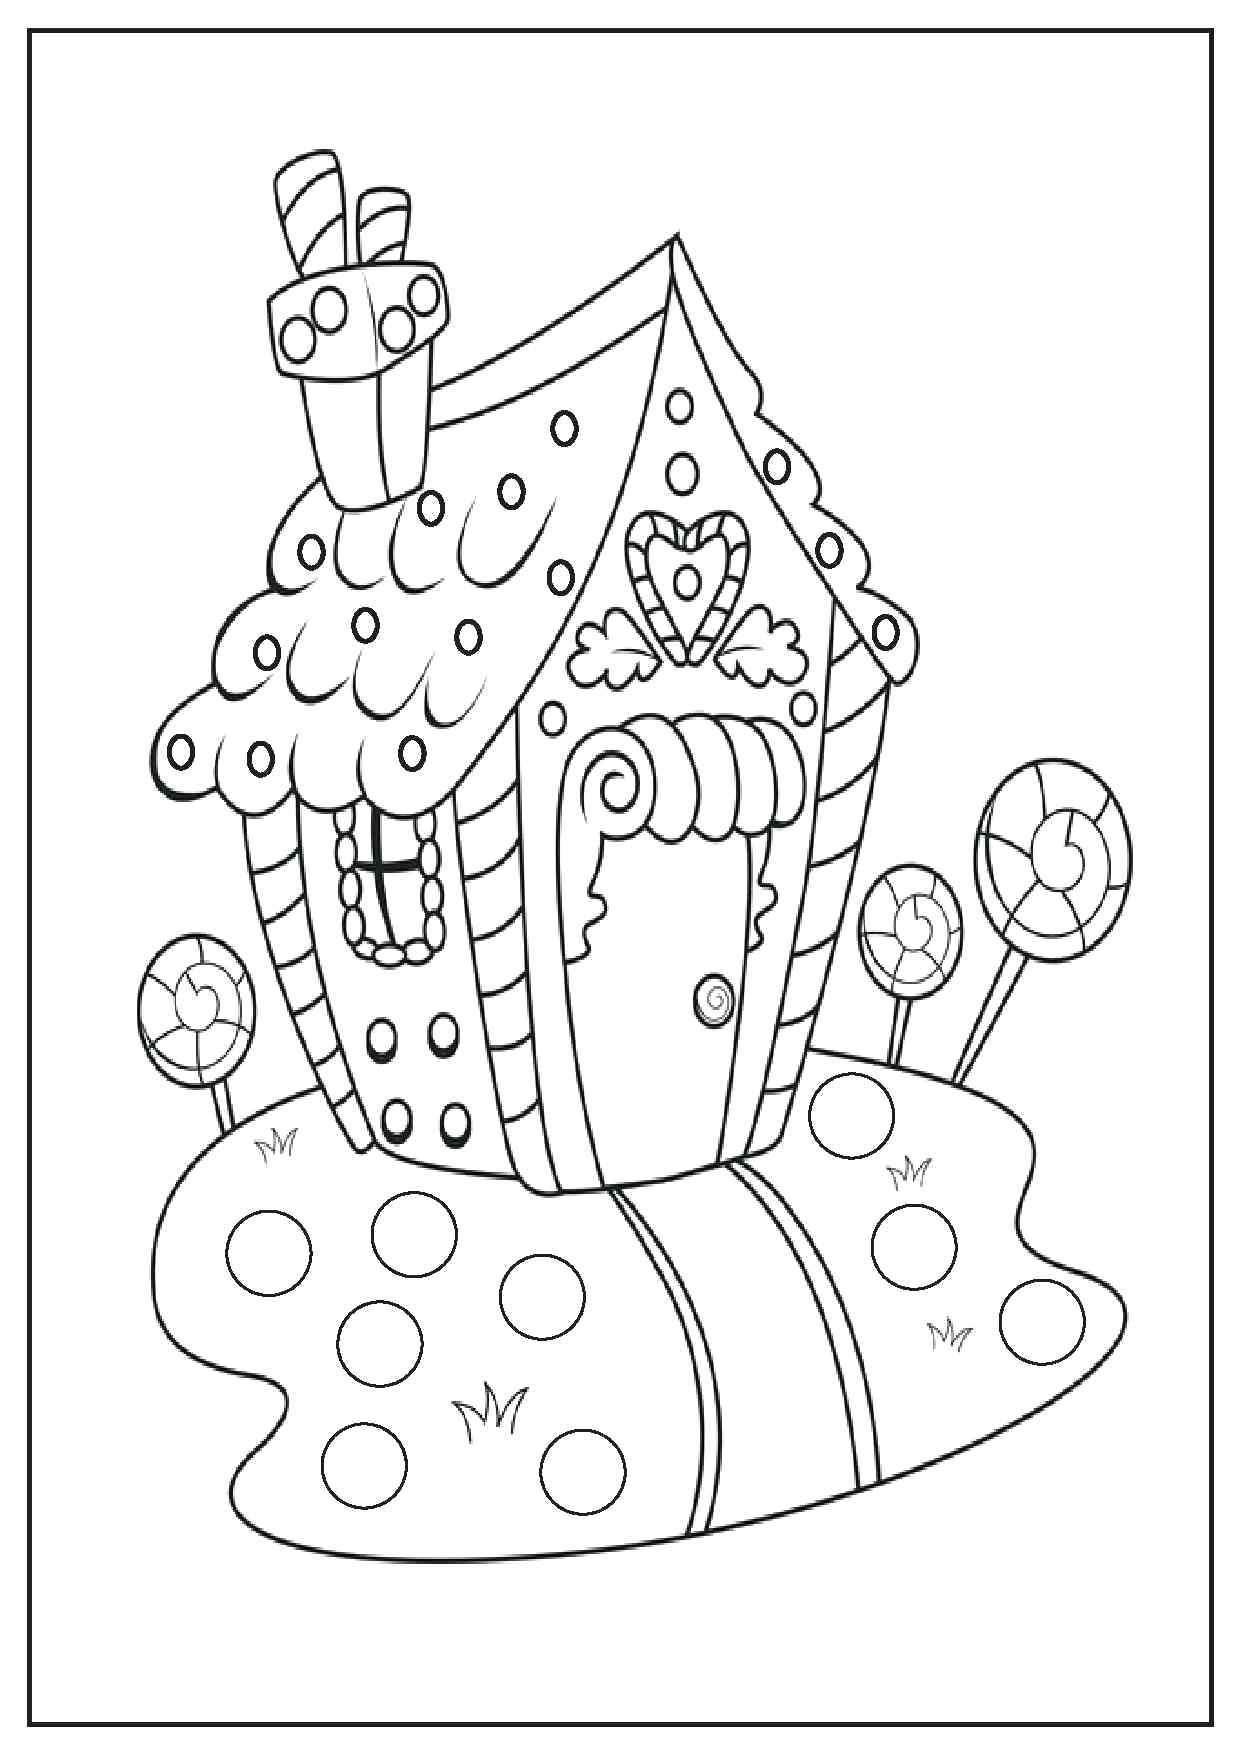 Cell Coloring Worksheet Answers